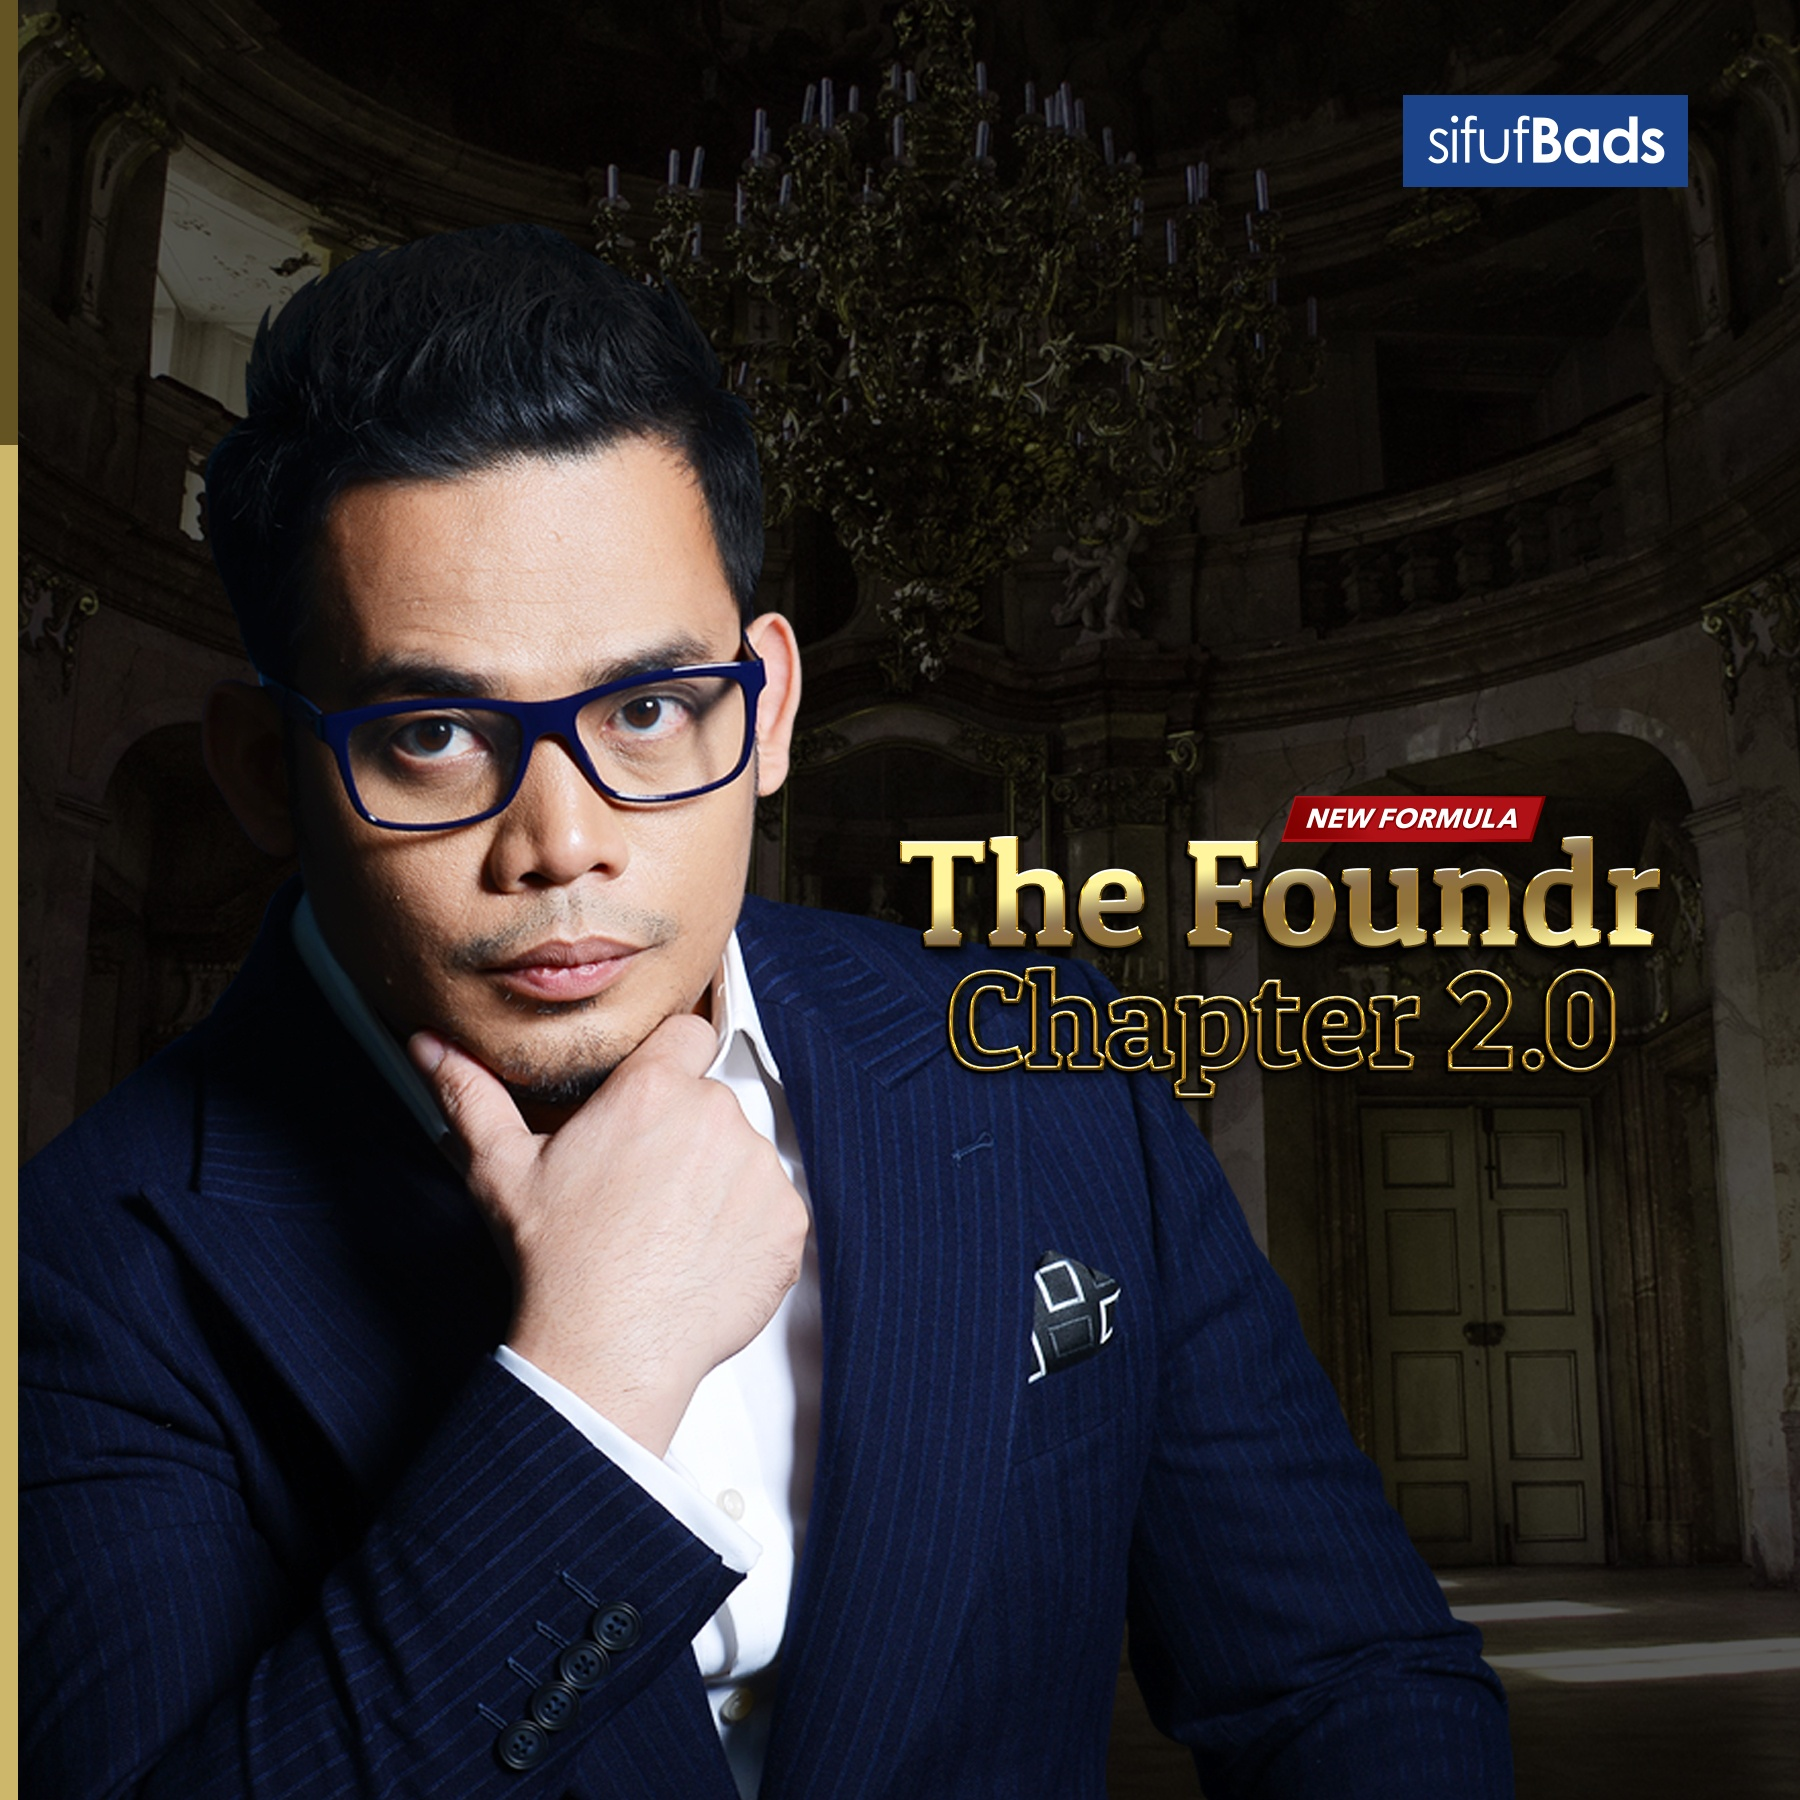 THE FOUNDR CHAPTER 2.0